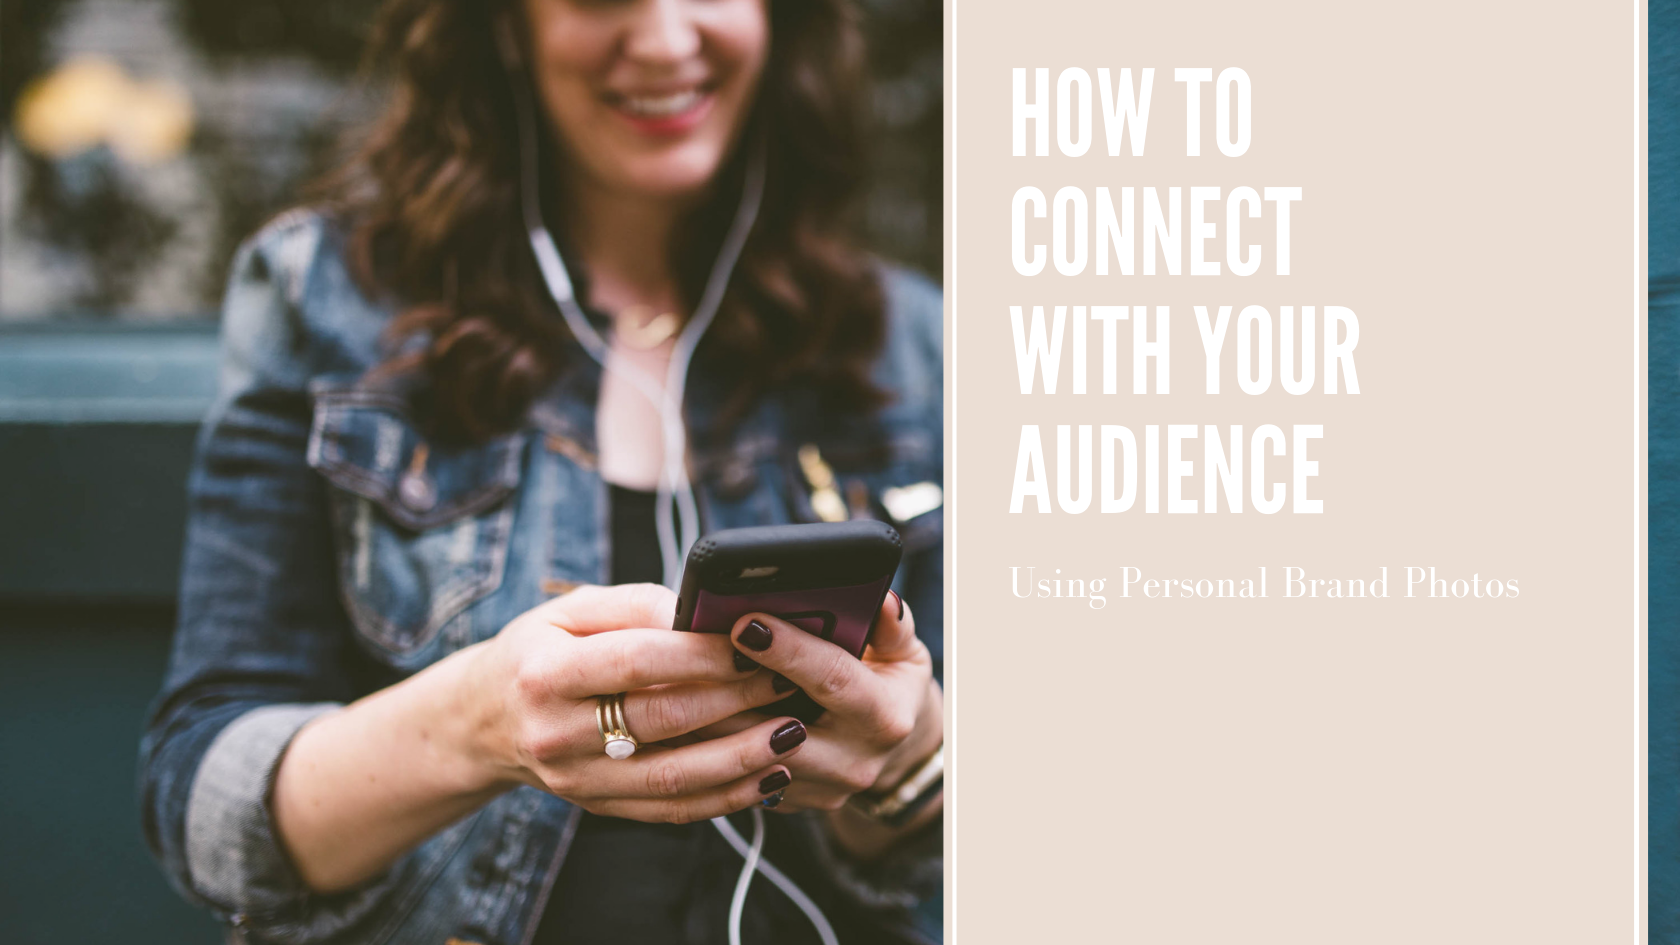 How To Connect With Your Audience - Post Graphic.png